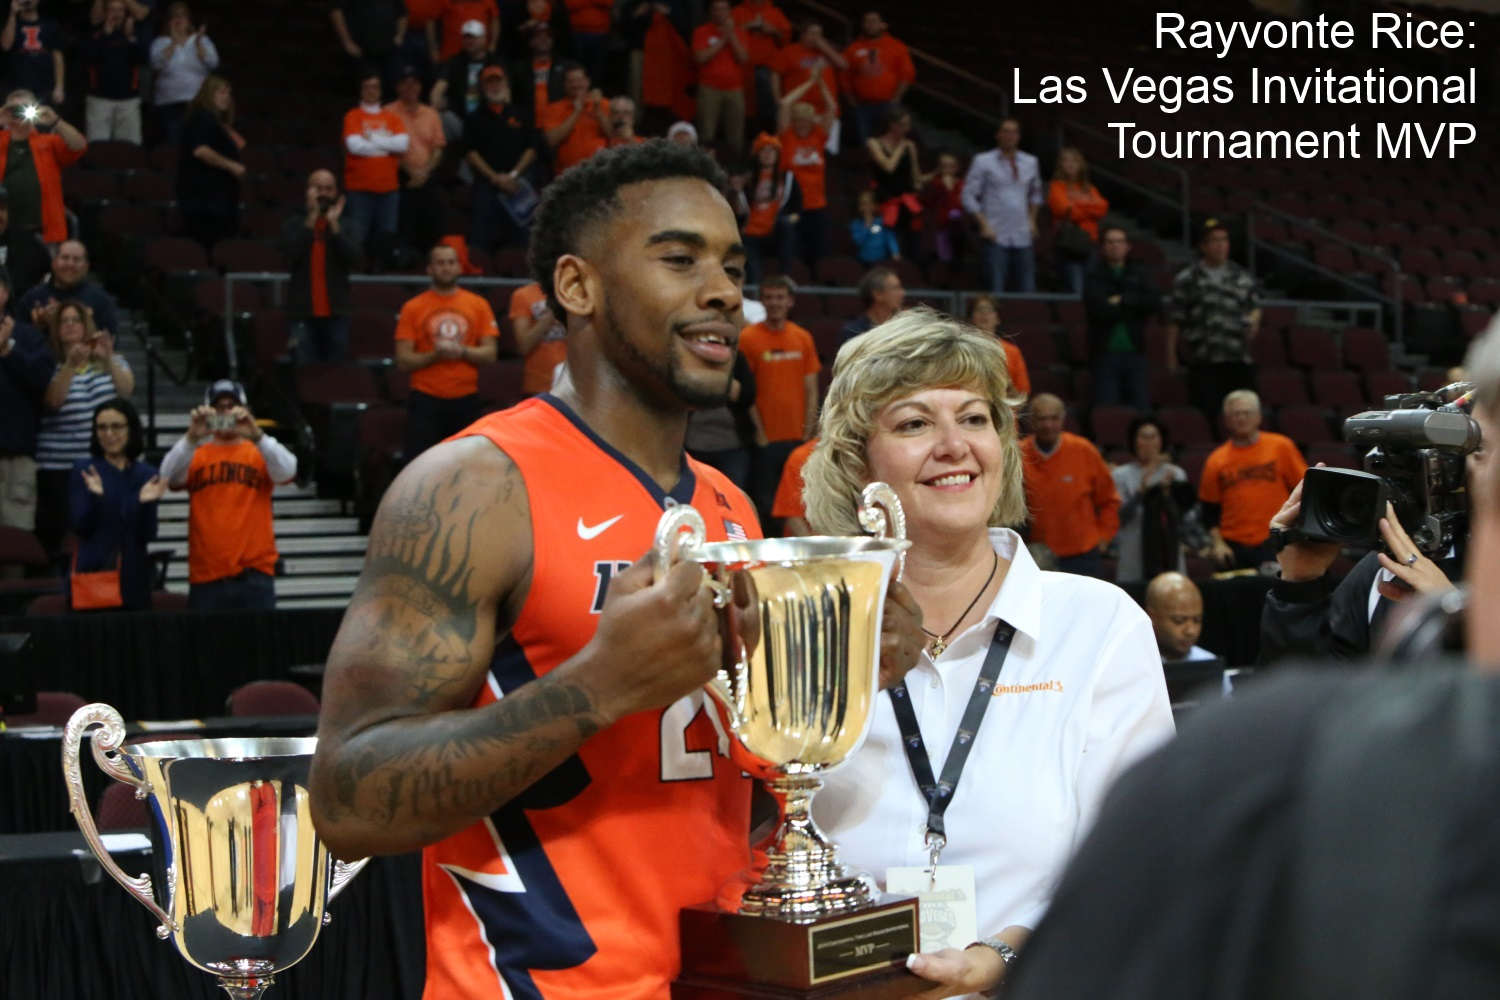 Rayvonte Rice tournament MVP